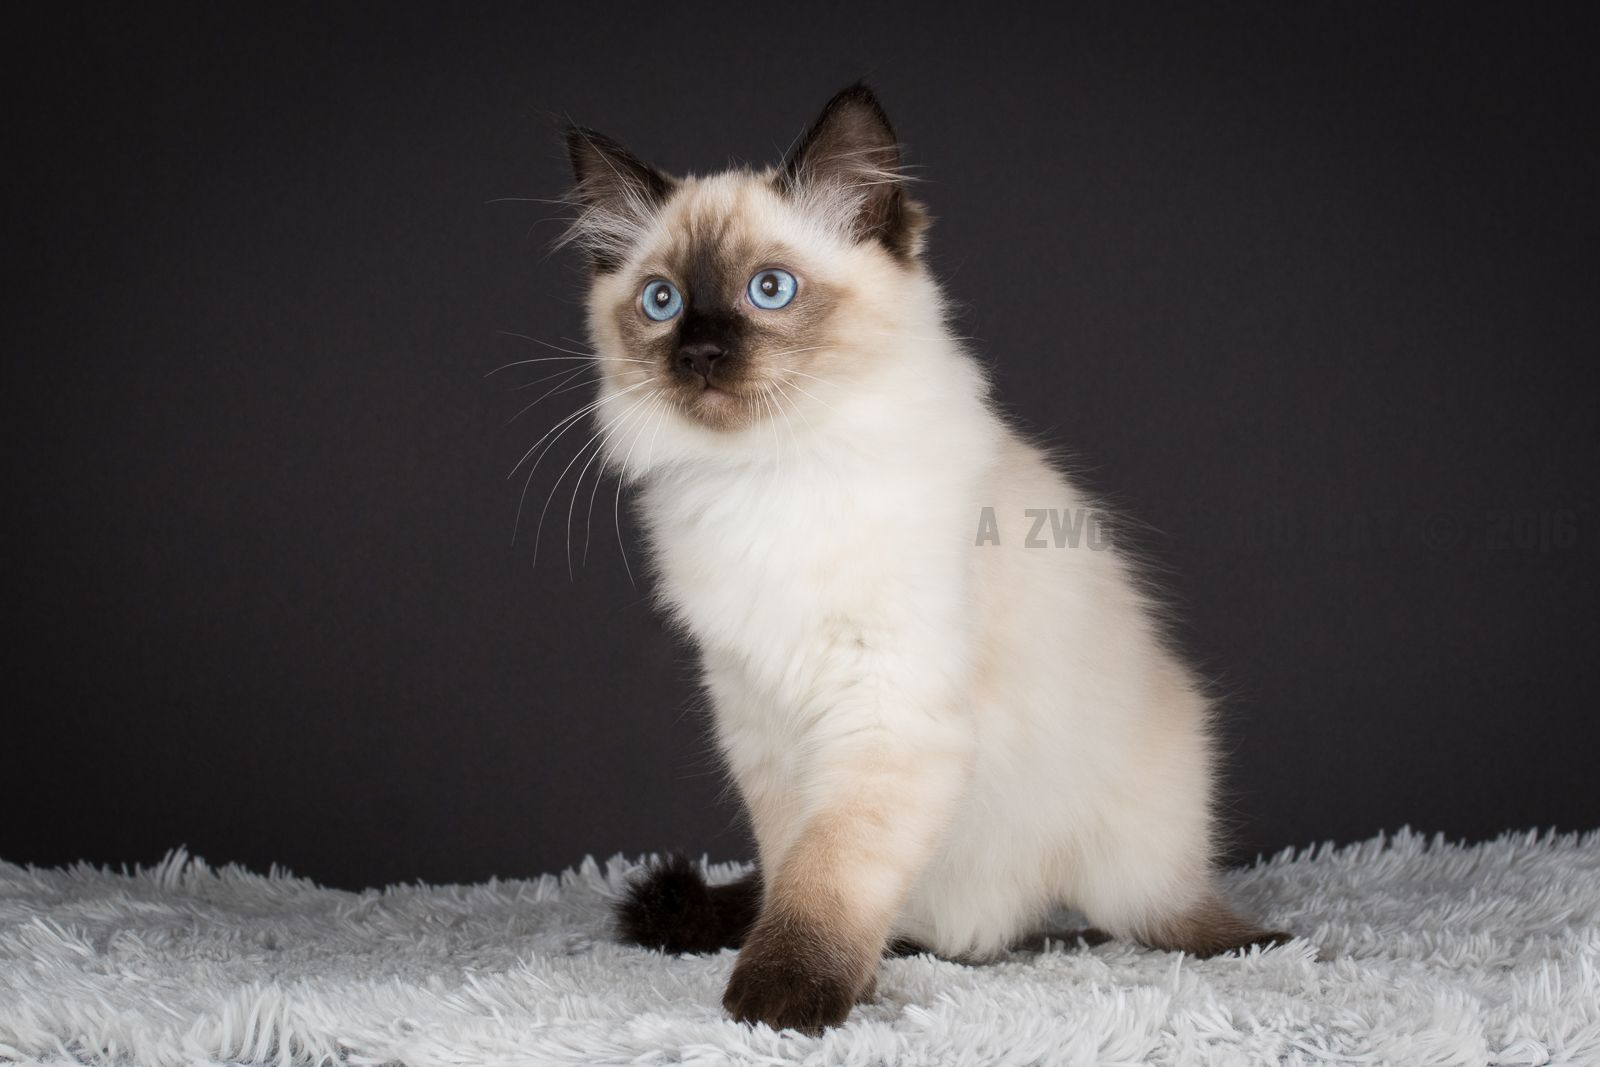 2016 Fred A Zwollywood Cat 12 Weeks Old Ragdoll Kitten Seal Colourpoint From The Flintstones Litter